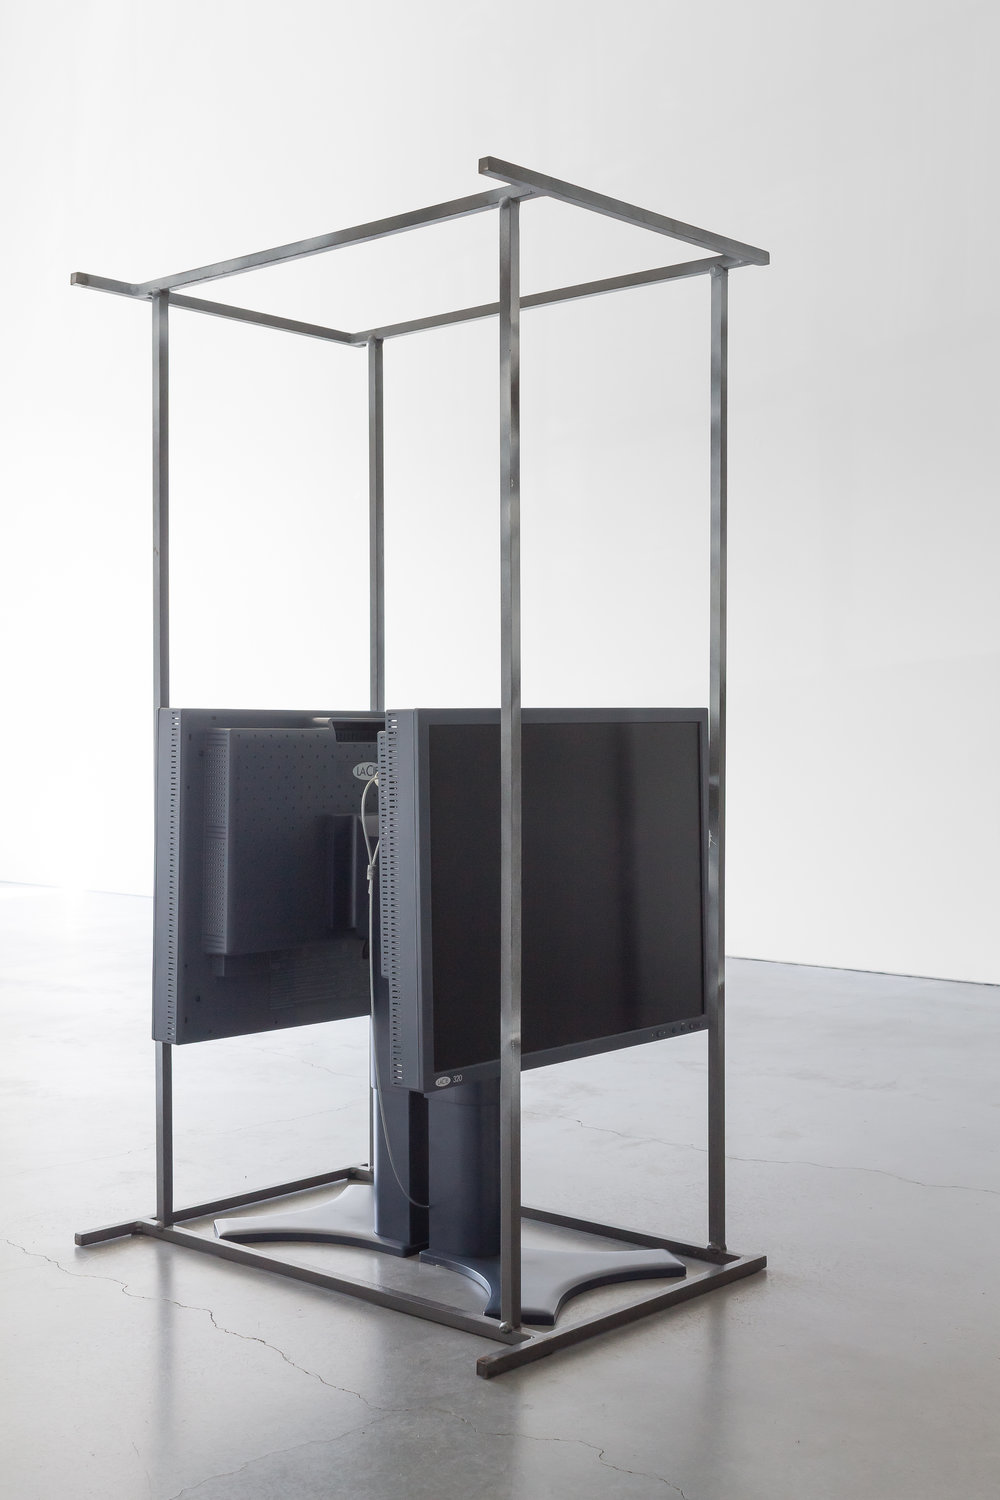 Kristine Eudey, Untitled (monitors), 2016